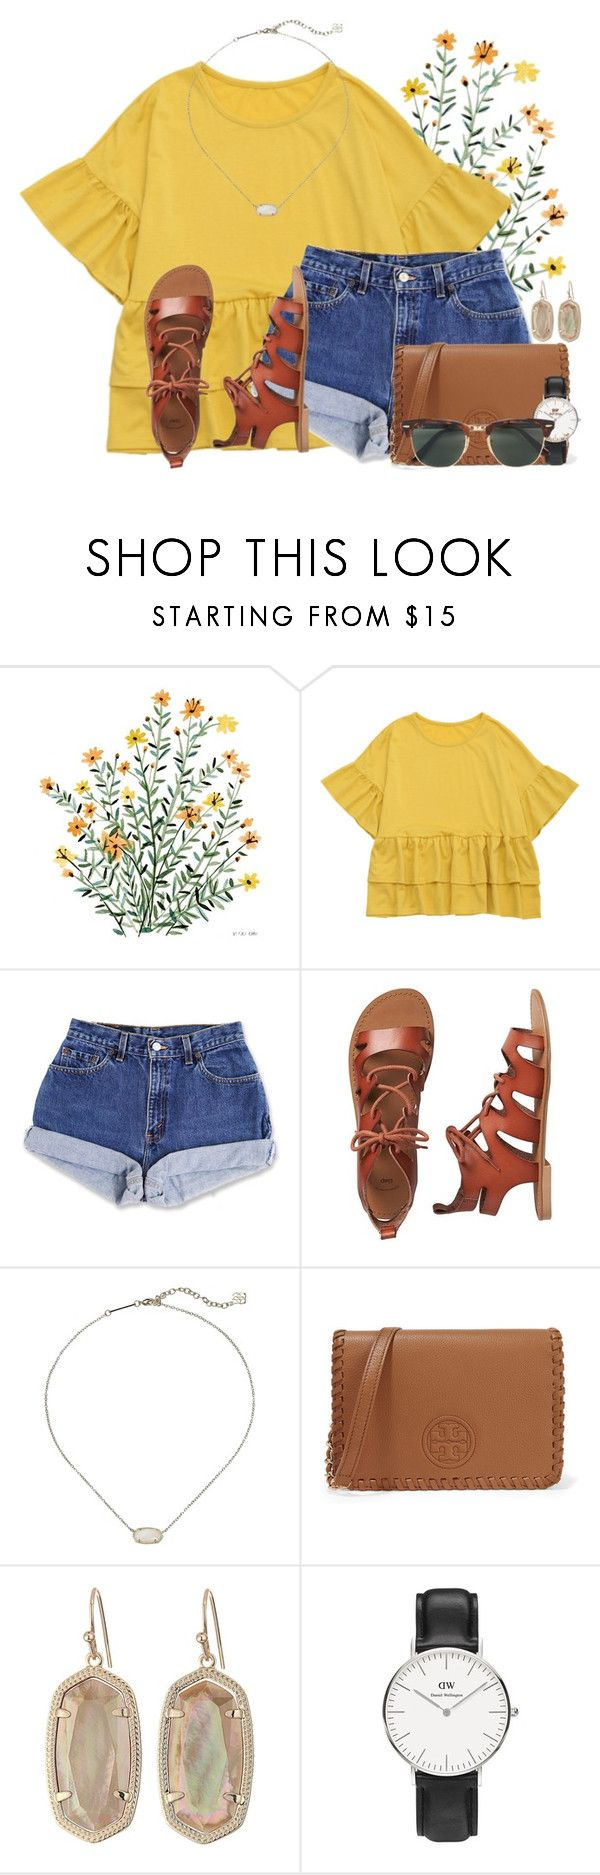 """I love the color yellow..Whats your fav color?"" by annaewakefield ❤ liked on Polyvore featuring Gap, Kendra Scott, Tory Burch, Daniel Wellington and Ray-Ban"